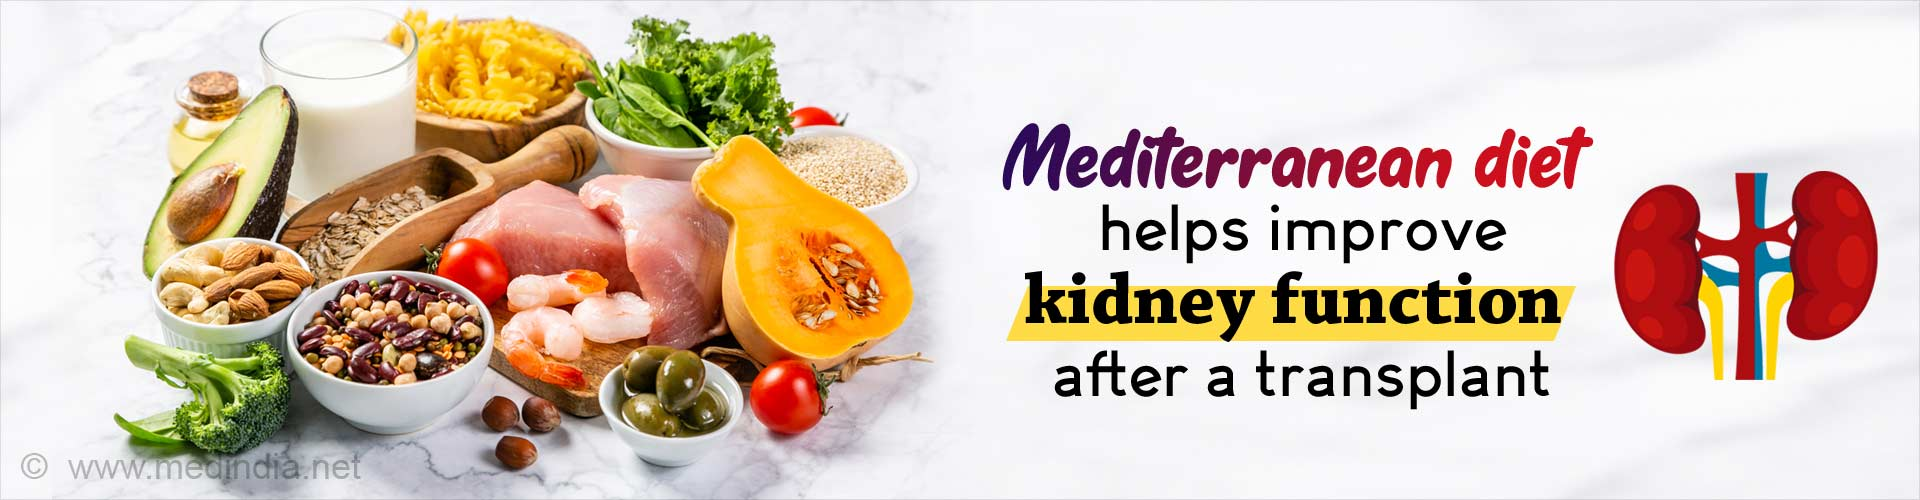 Mediterranean Diet Helps Improve Kidney Function After a Transplant